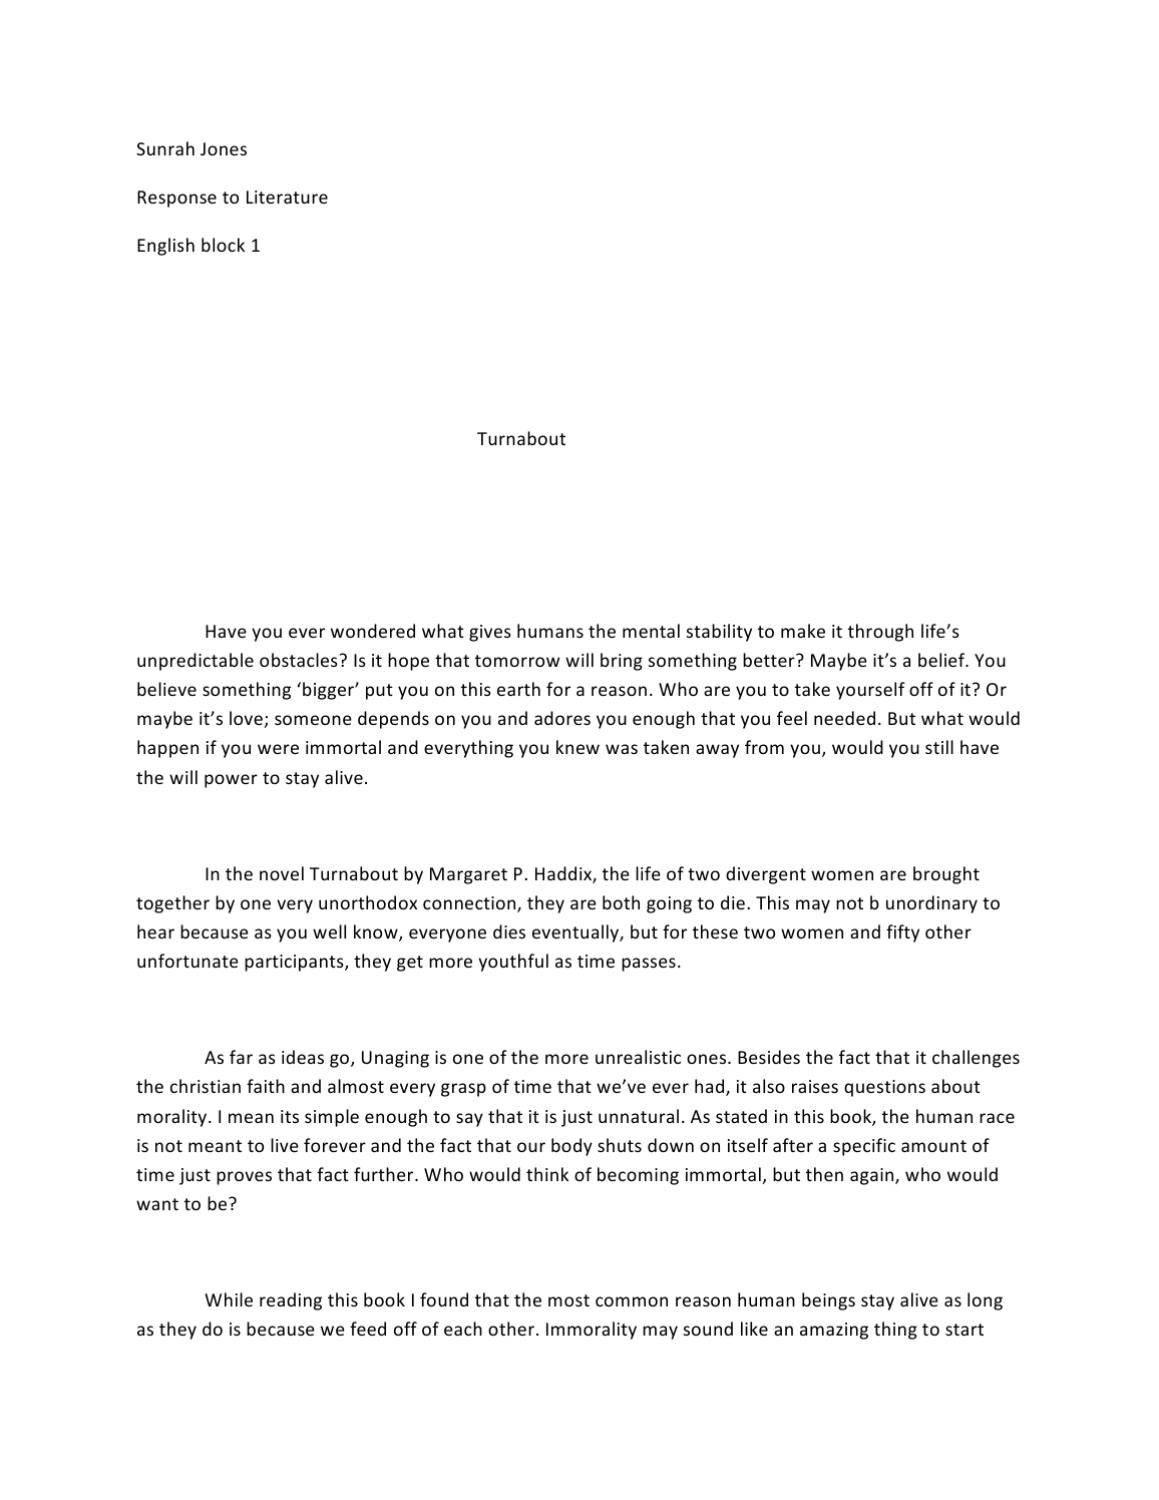 expository essay on divergent Browse divergent resources on teachers pay teachers, a marketplace trusted by millions of teachers for original educational resources  english language arts, creative writing, writing-expository grades: 7 th, 8 th, 9 th, 10 th, 11 th, 12 th  in response to the 70 questions, learners will write a short quickwrite essay in a journal.